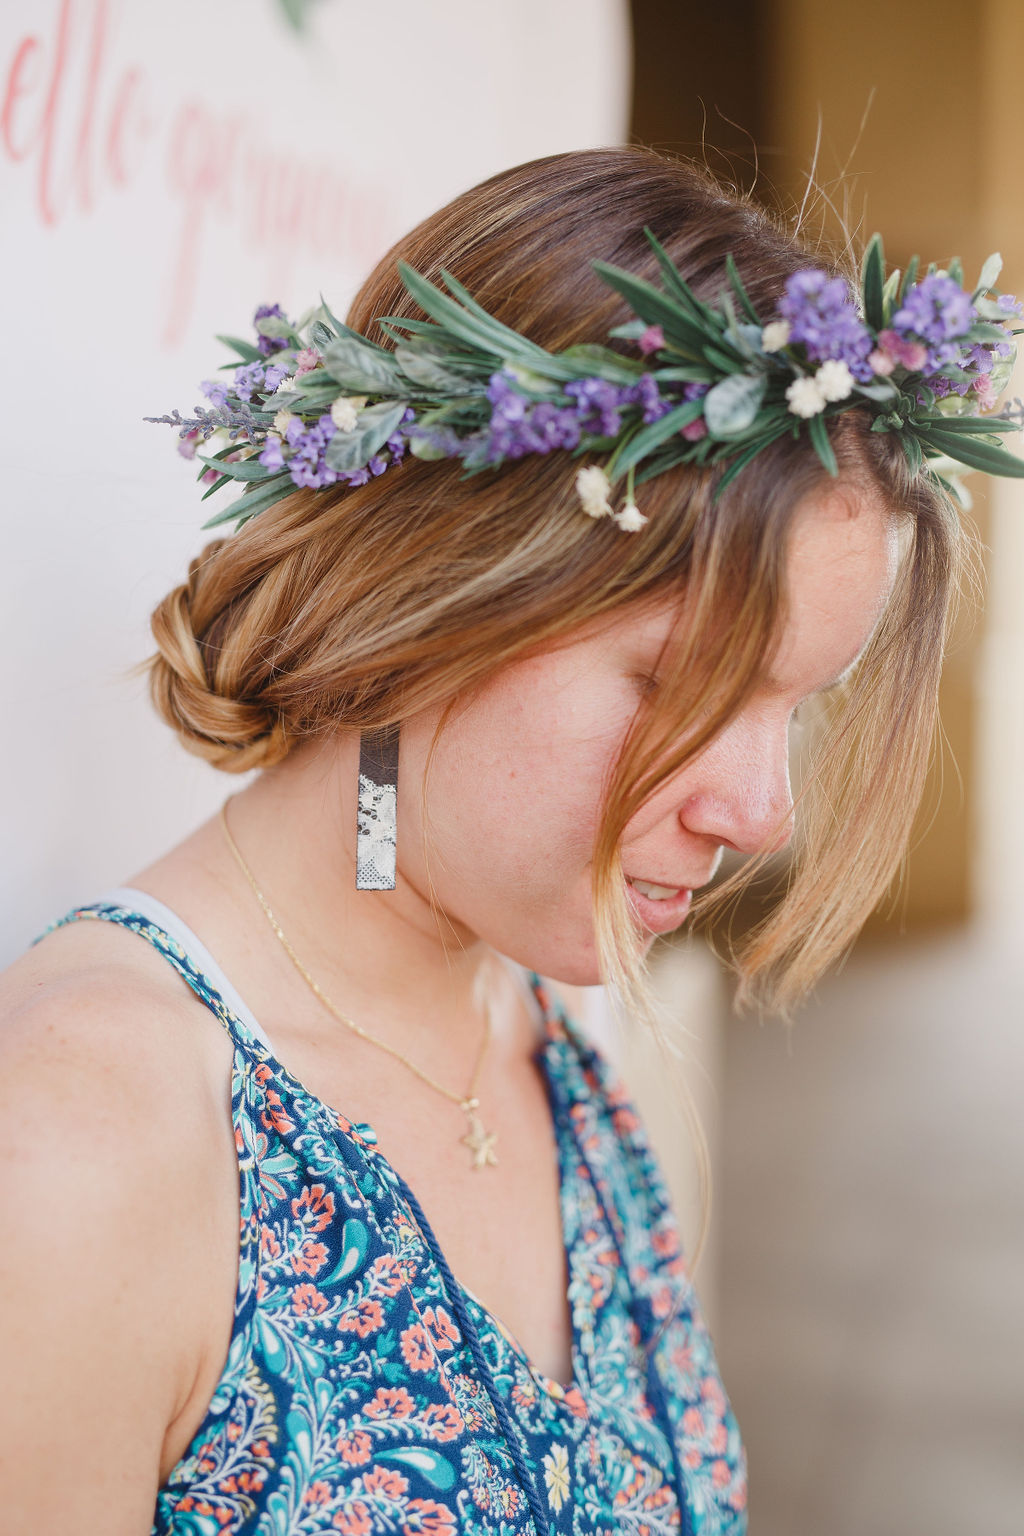 flower crown workshop in southern California by Love Sparkle Pretty to provide clean water for World Vision